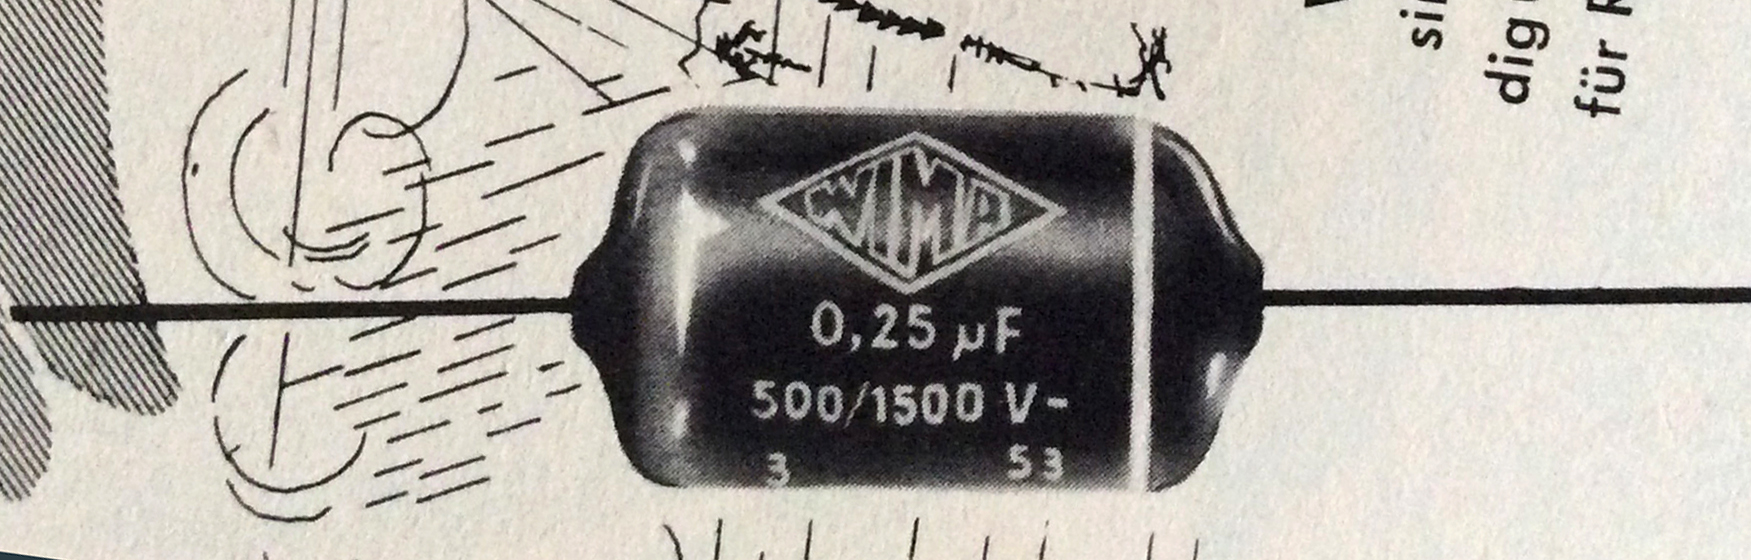 WIMA Tropydur capacitor ad detail